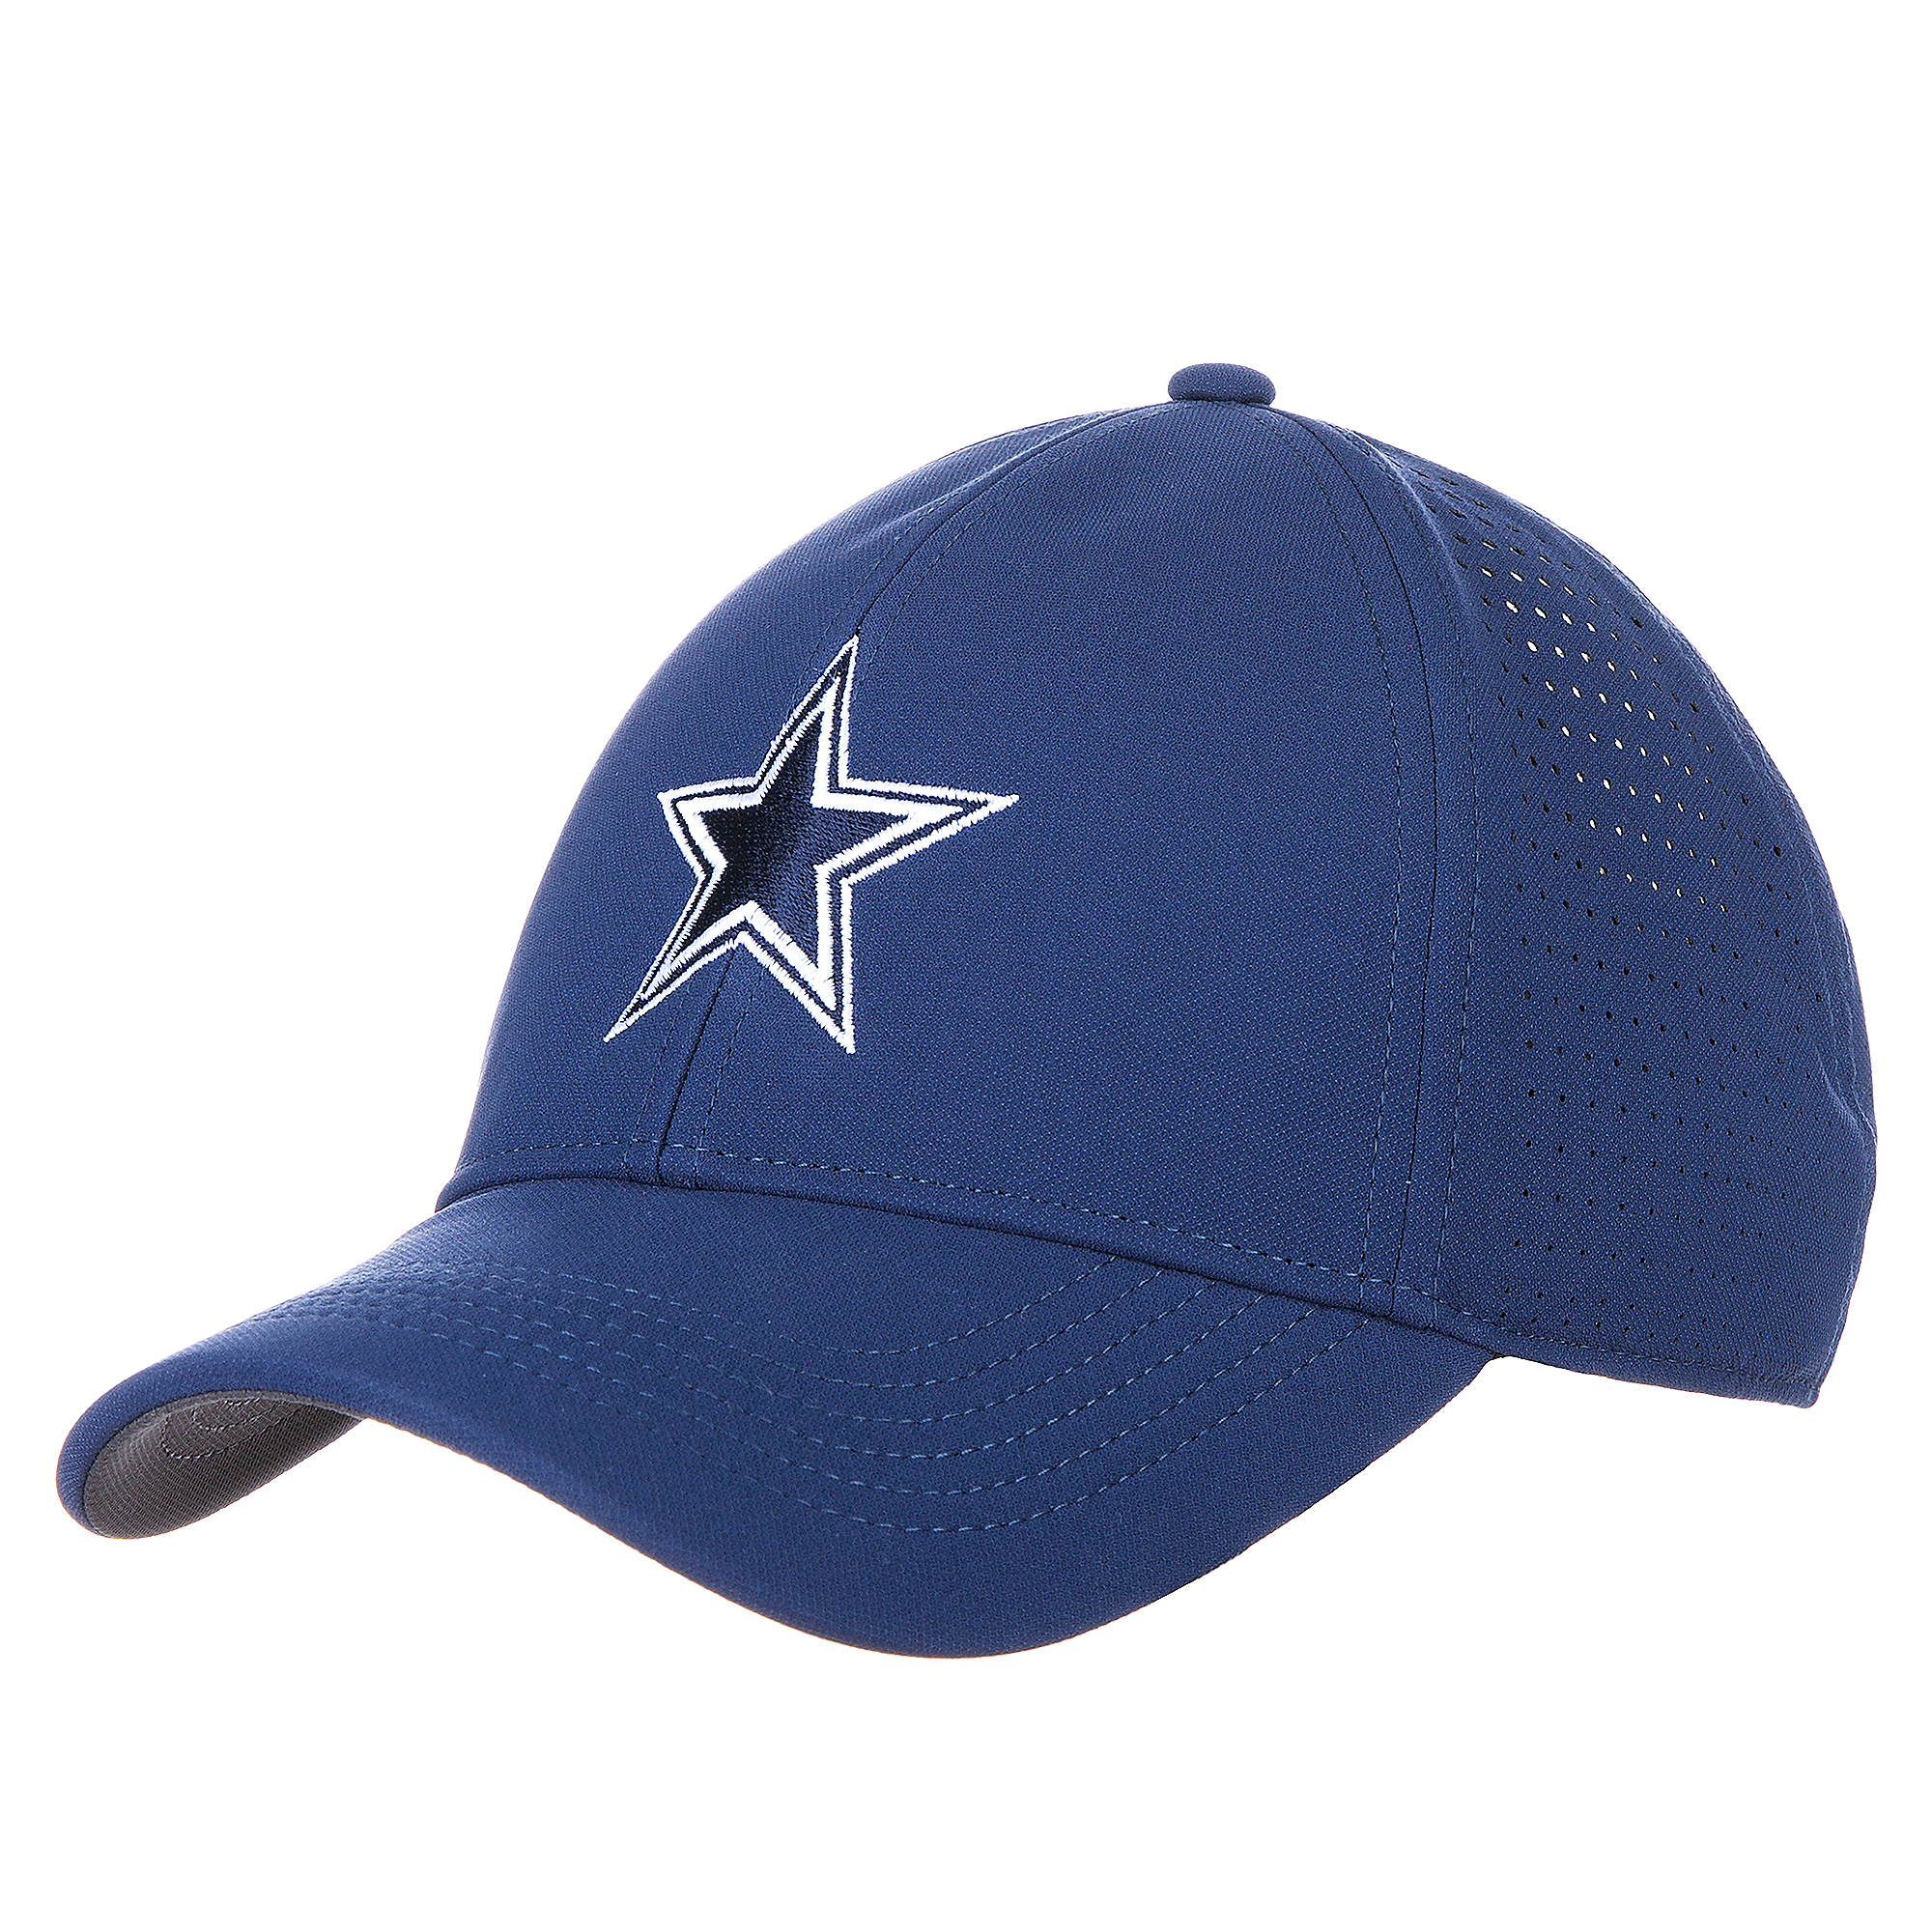 b66448a6f90 Dallas Cowboys Nike AeroBill Golf Hat